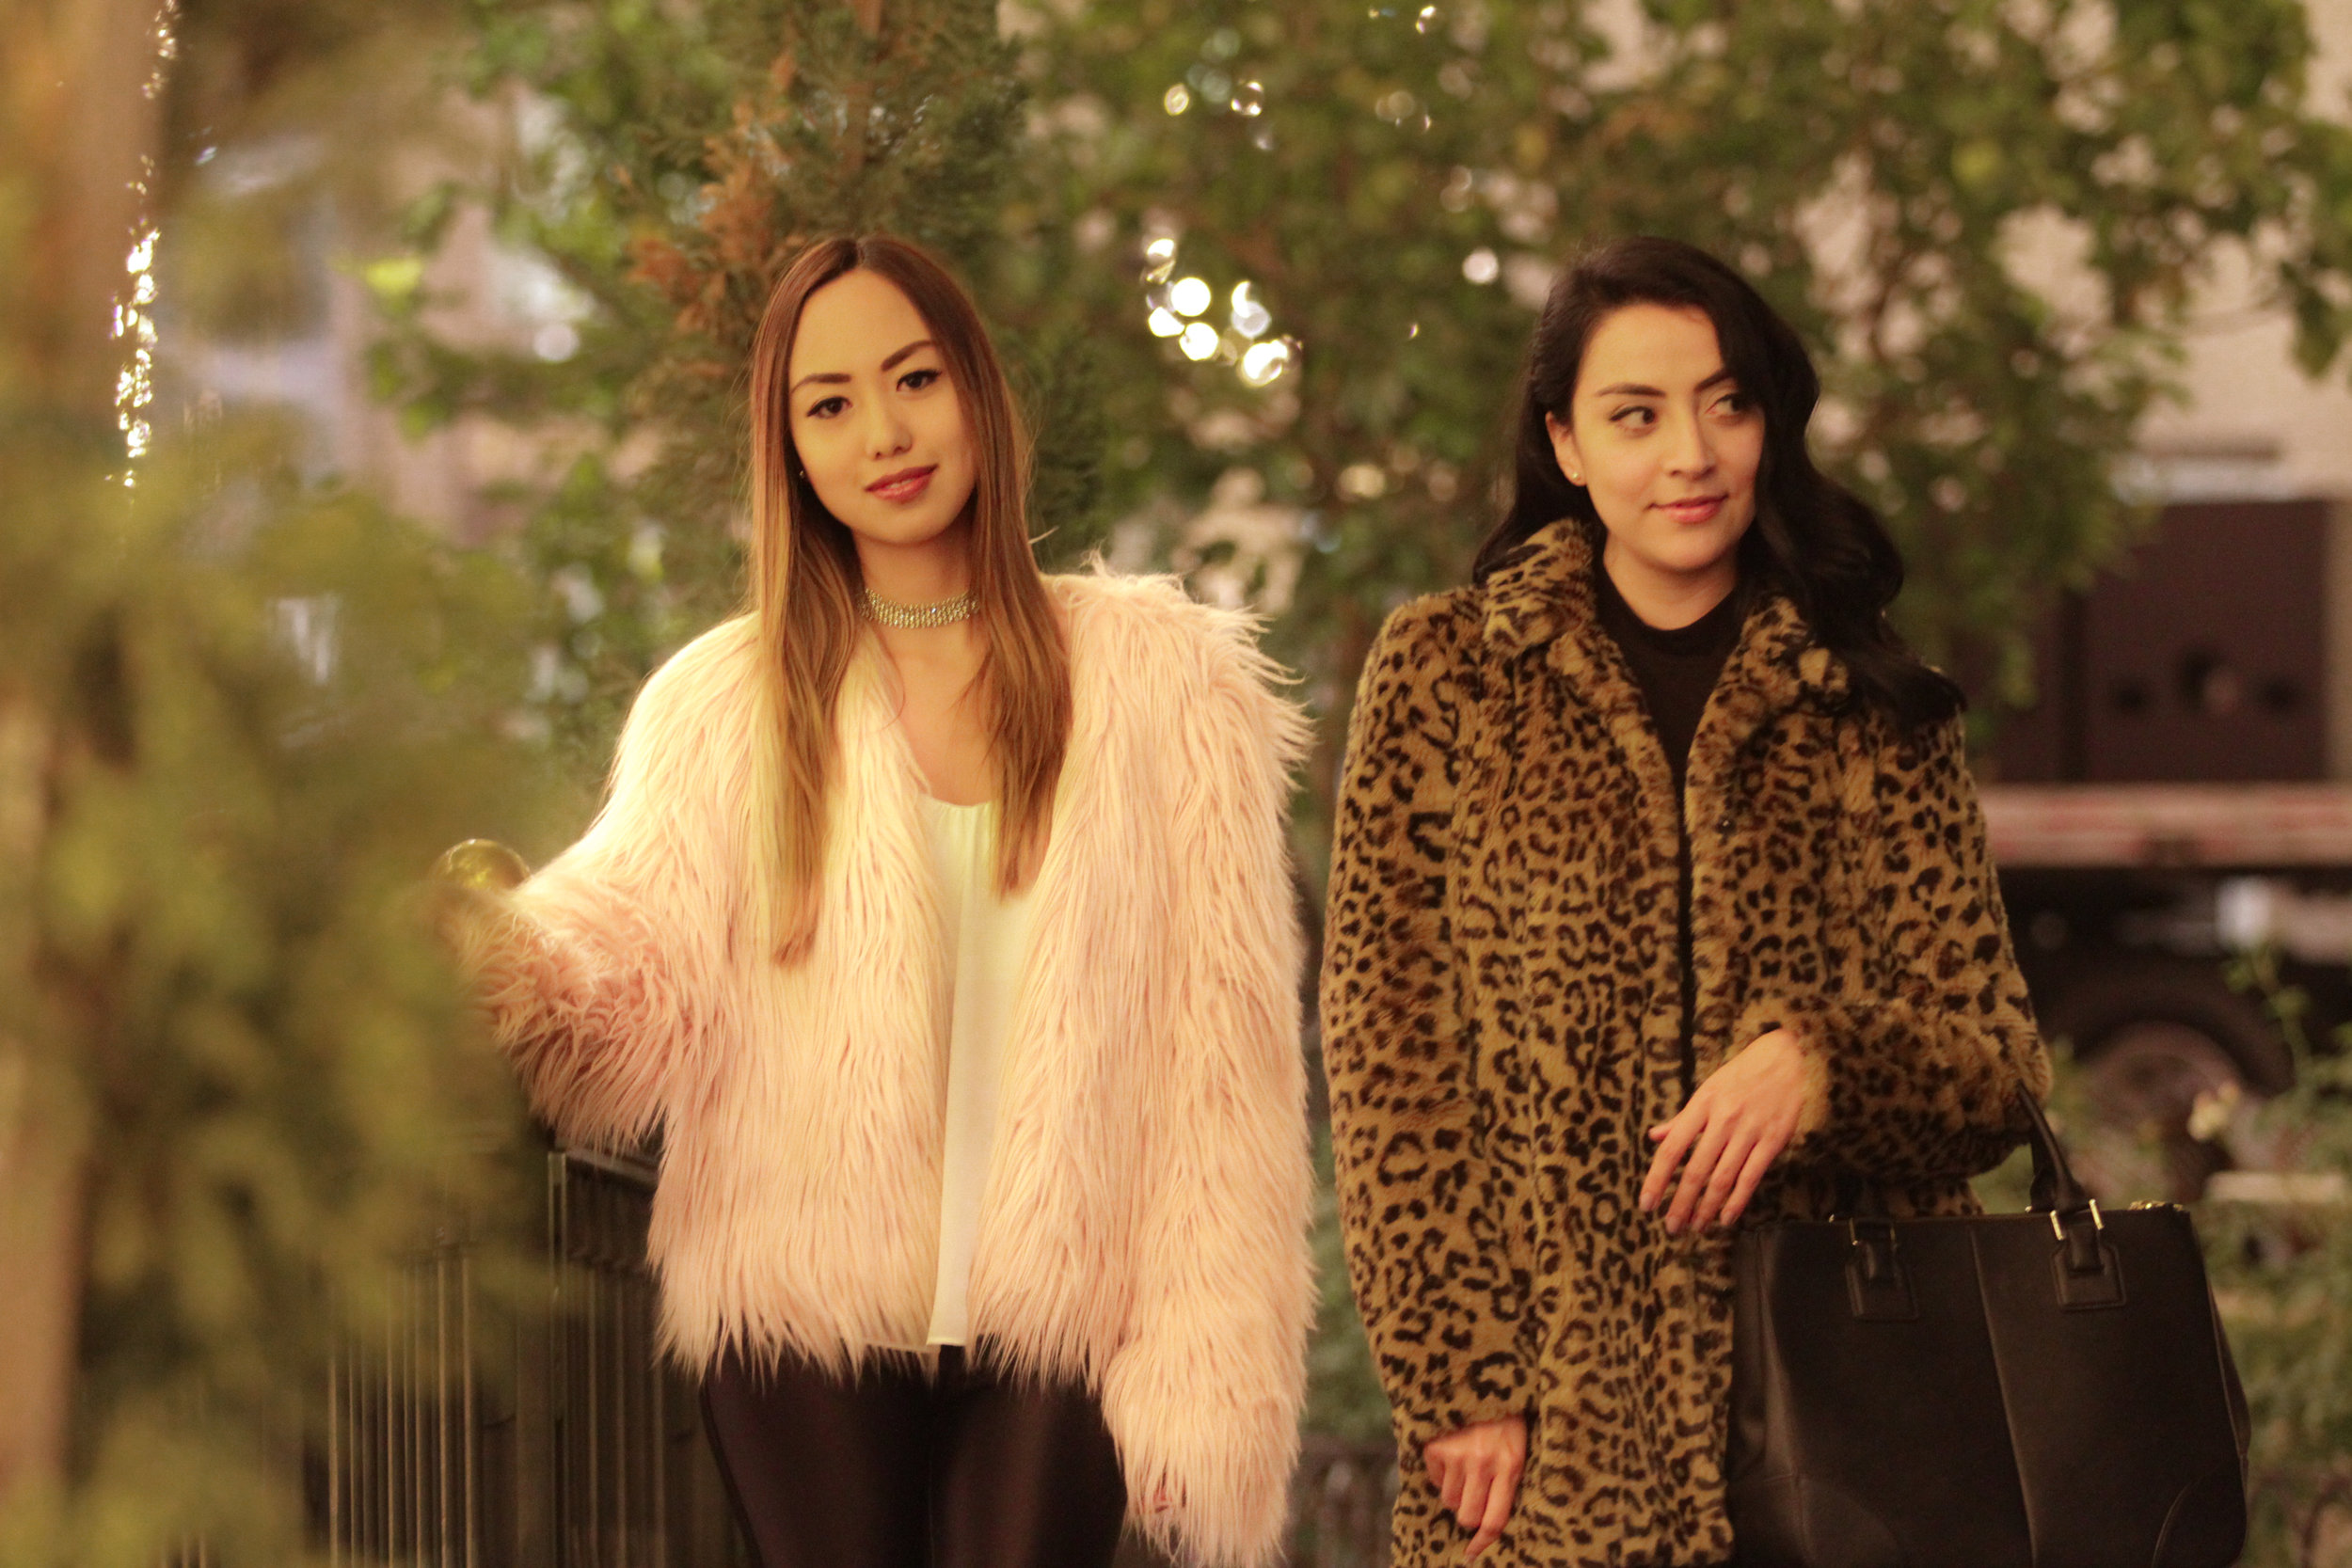 A little funny story about these coats...we both got these towards the end of winter last year, but never had the chance to wear them. However,this year, it was the first thing we took out as soon as it began to get colder out. We both knew that they would be staples and great statement pieces for the chilly season. We love our coats so much we'll show you how to style them in a later post for a day look.